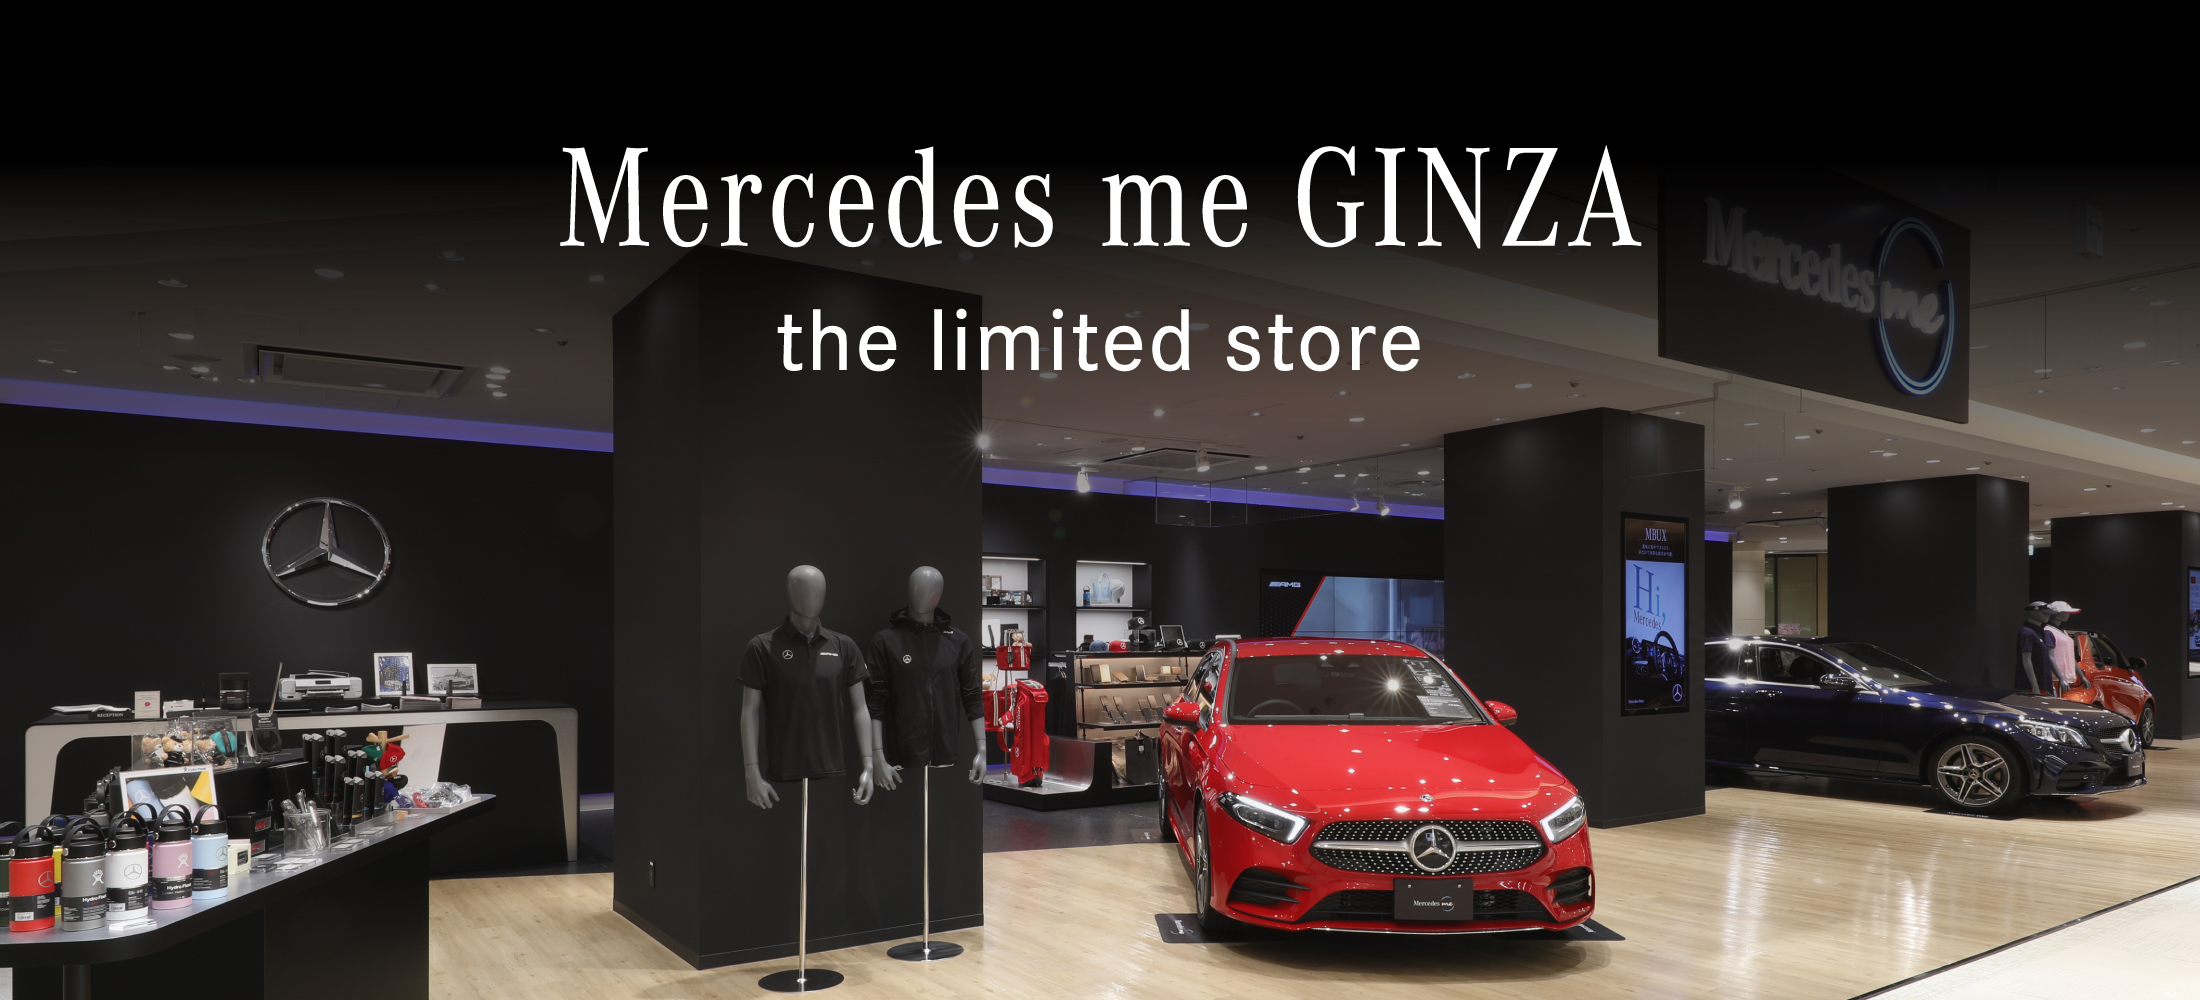 Mercedes me GINZA the limited store Place > MARRONNIER GATE GINZA 2 Pre-Open > 2019/4/1 〜 4/14 Open > 2019/4/15 〜 8/25